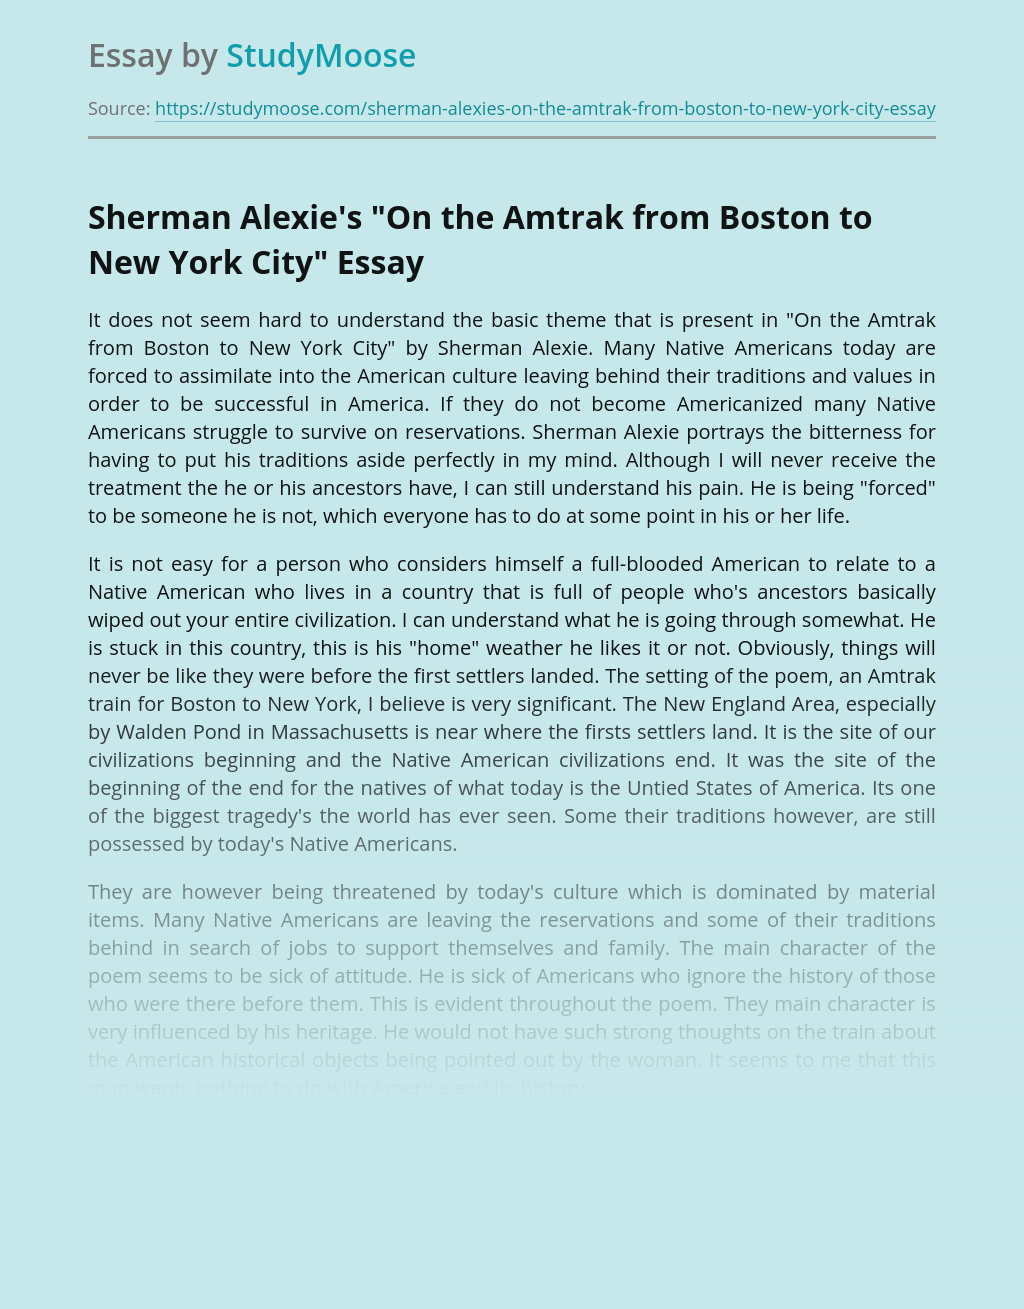 """Sherman Alexie's """"On the Amtrak from Boston to New York City"""""""